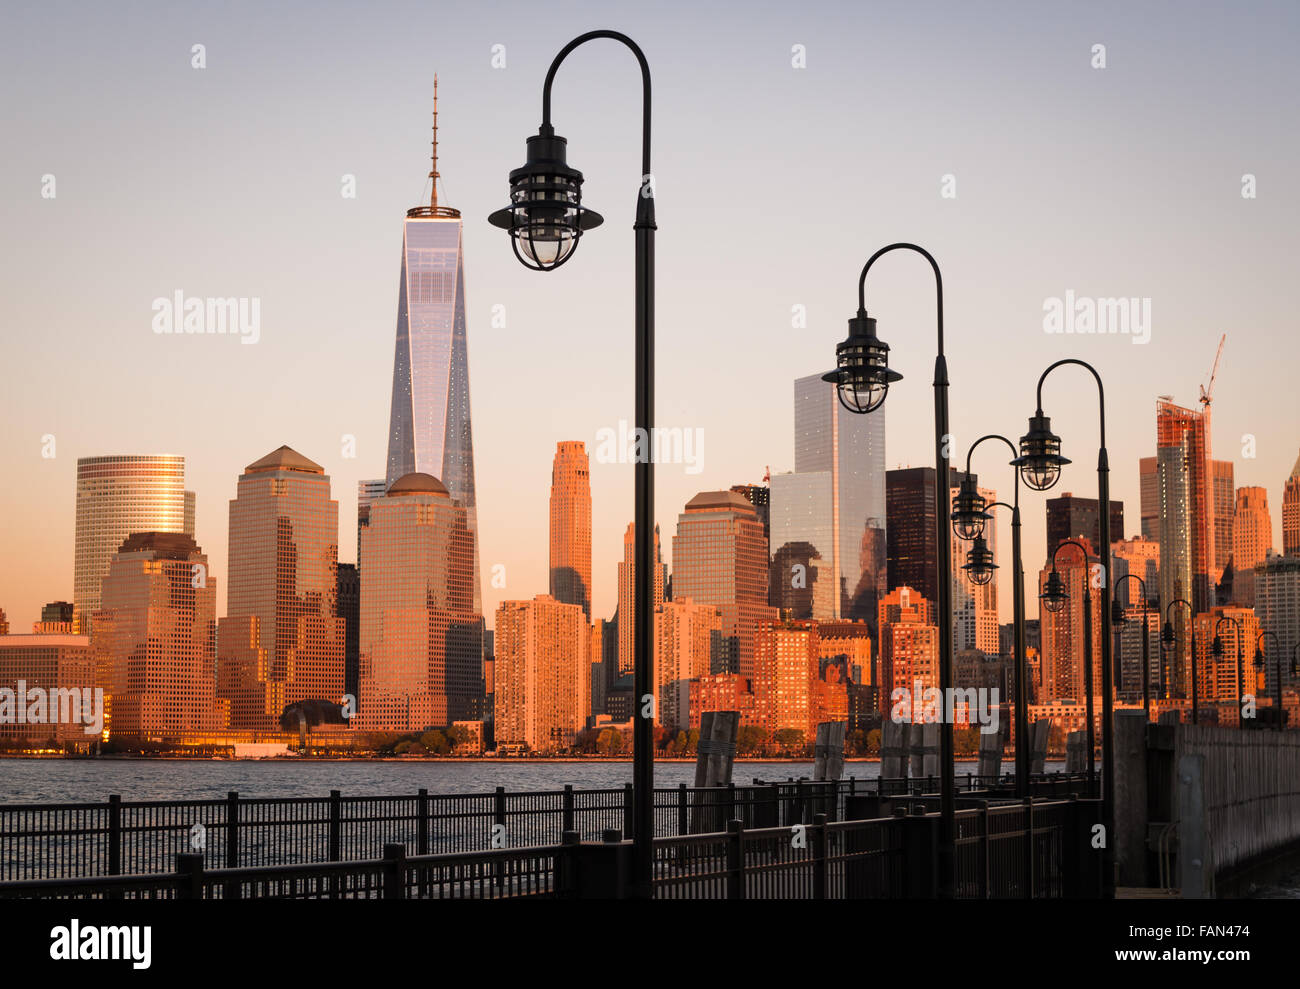 A derelict pier with street lamps looks across the Hudson River to the lower Manhattan skyline which reflects the - Stock Image